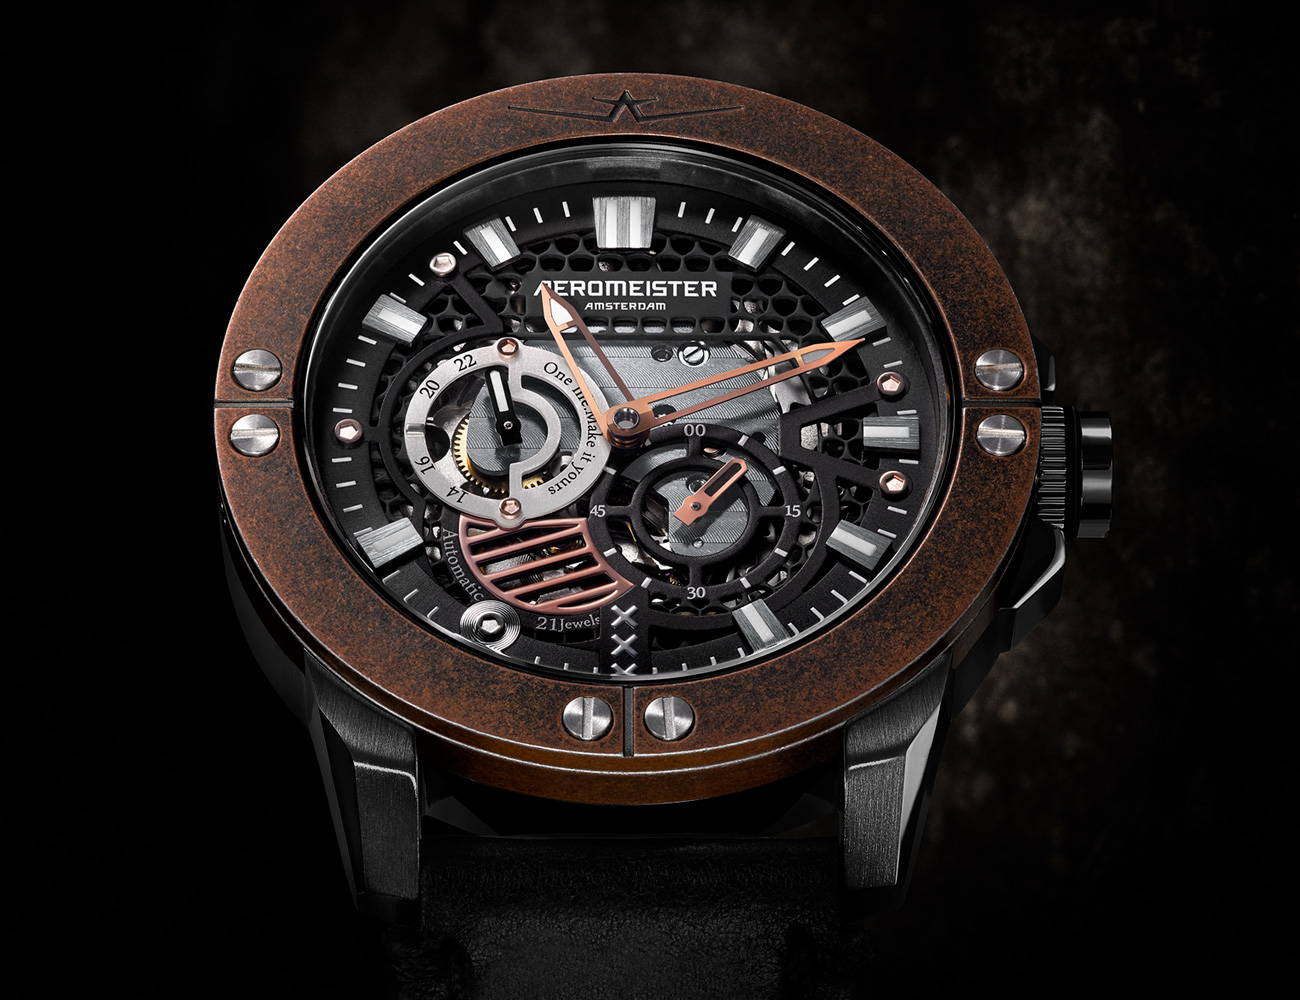 Aeromeister Amsterdam Craftman Meister X23 dial face